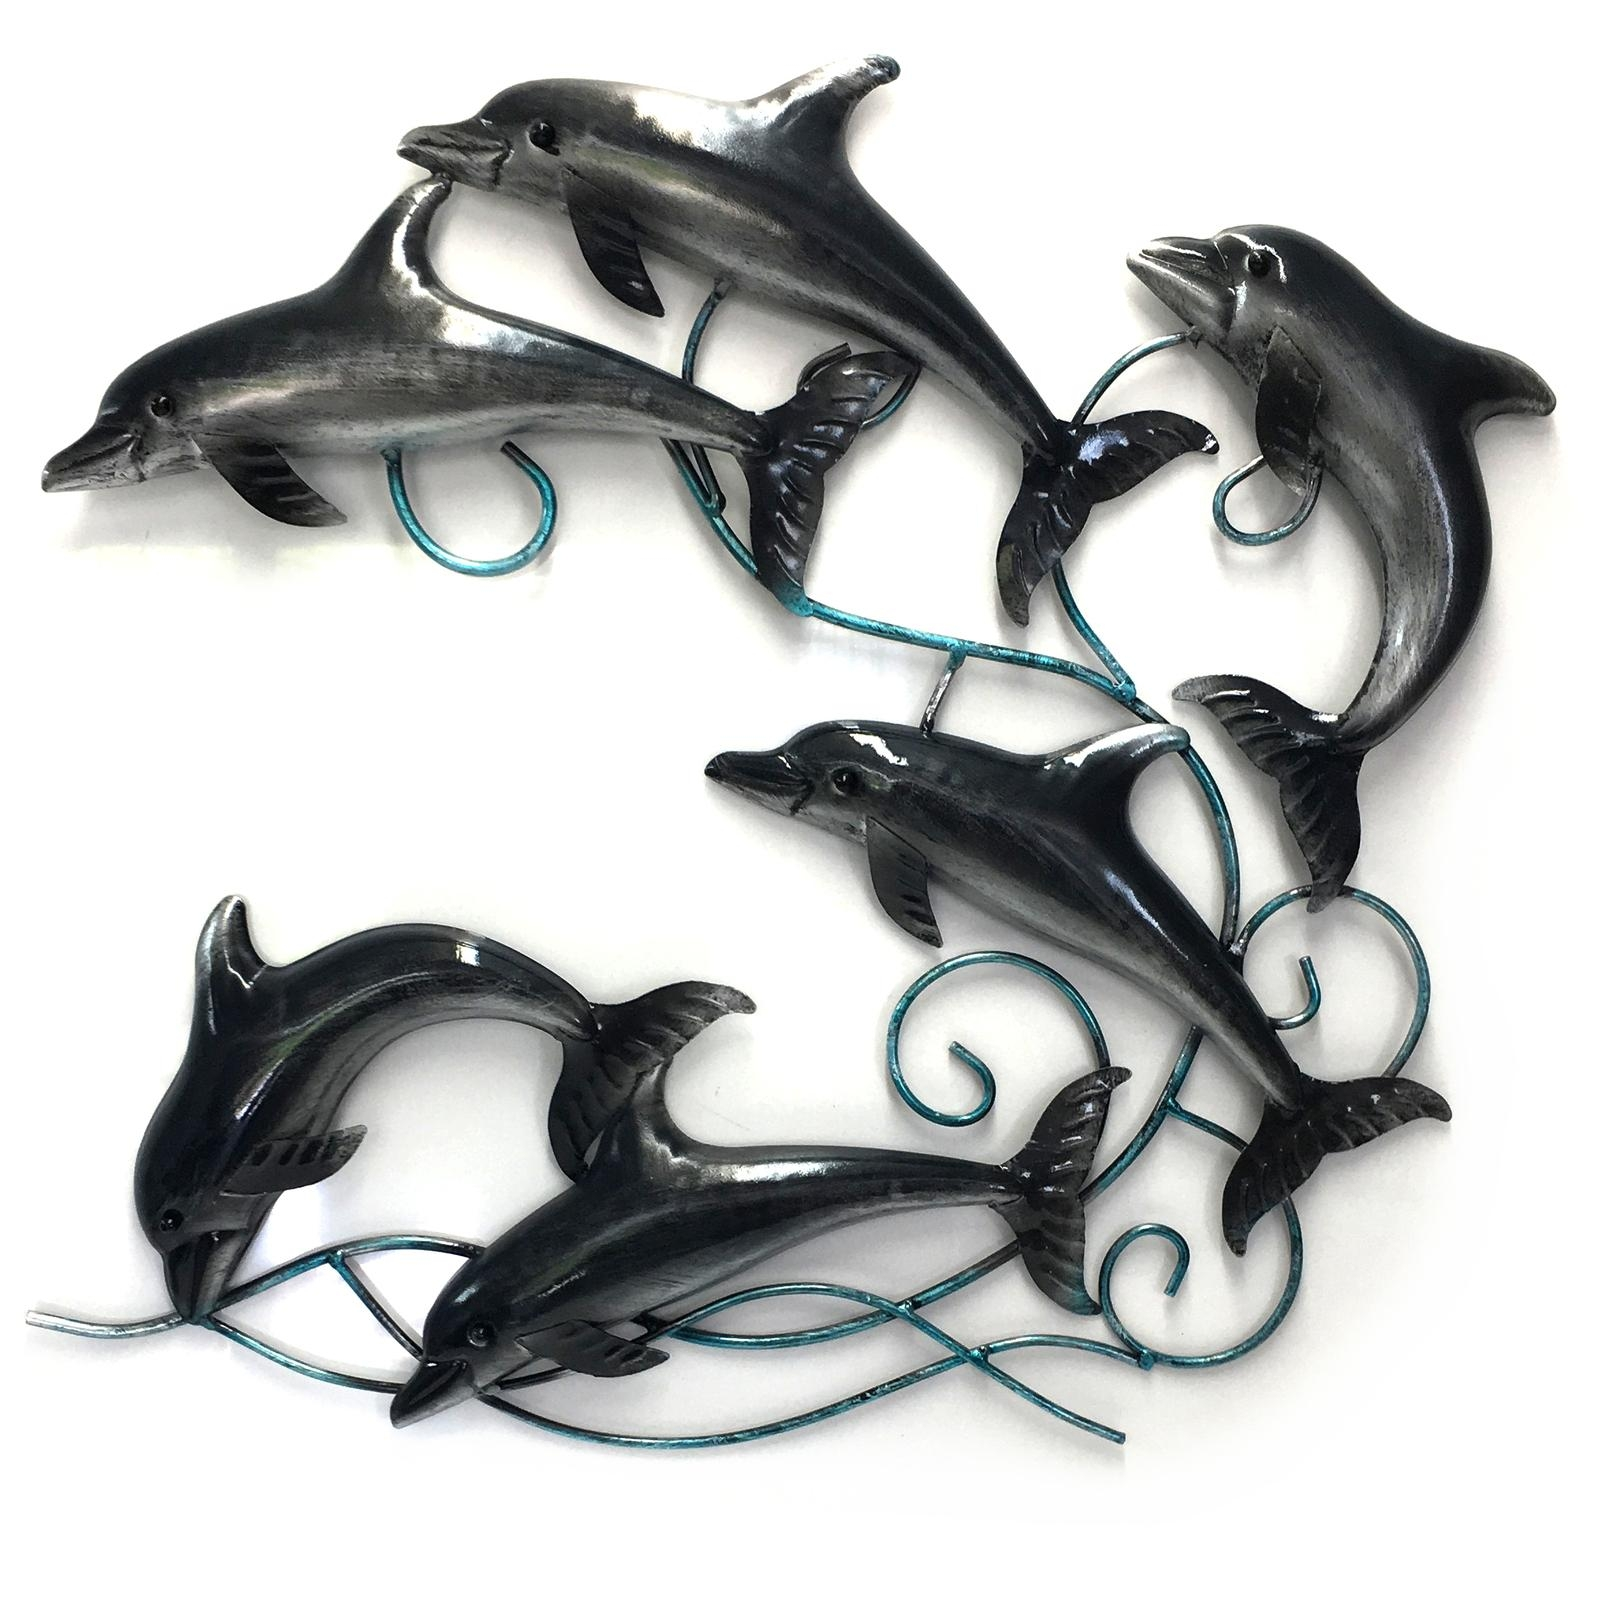 Dolphin Metal Wall Art Sculpture Hanging Garden Ornament Beach Big Intended For Dolphin Metal Wall Art (Image 6 of 20)